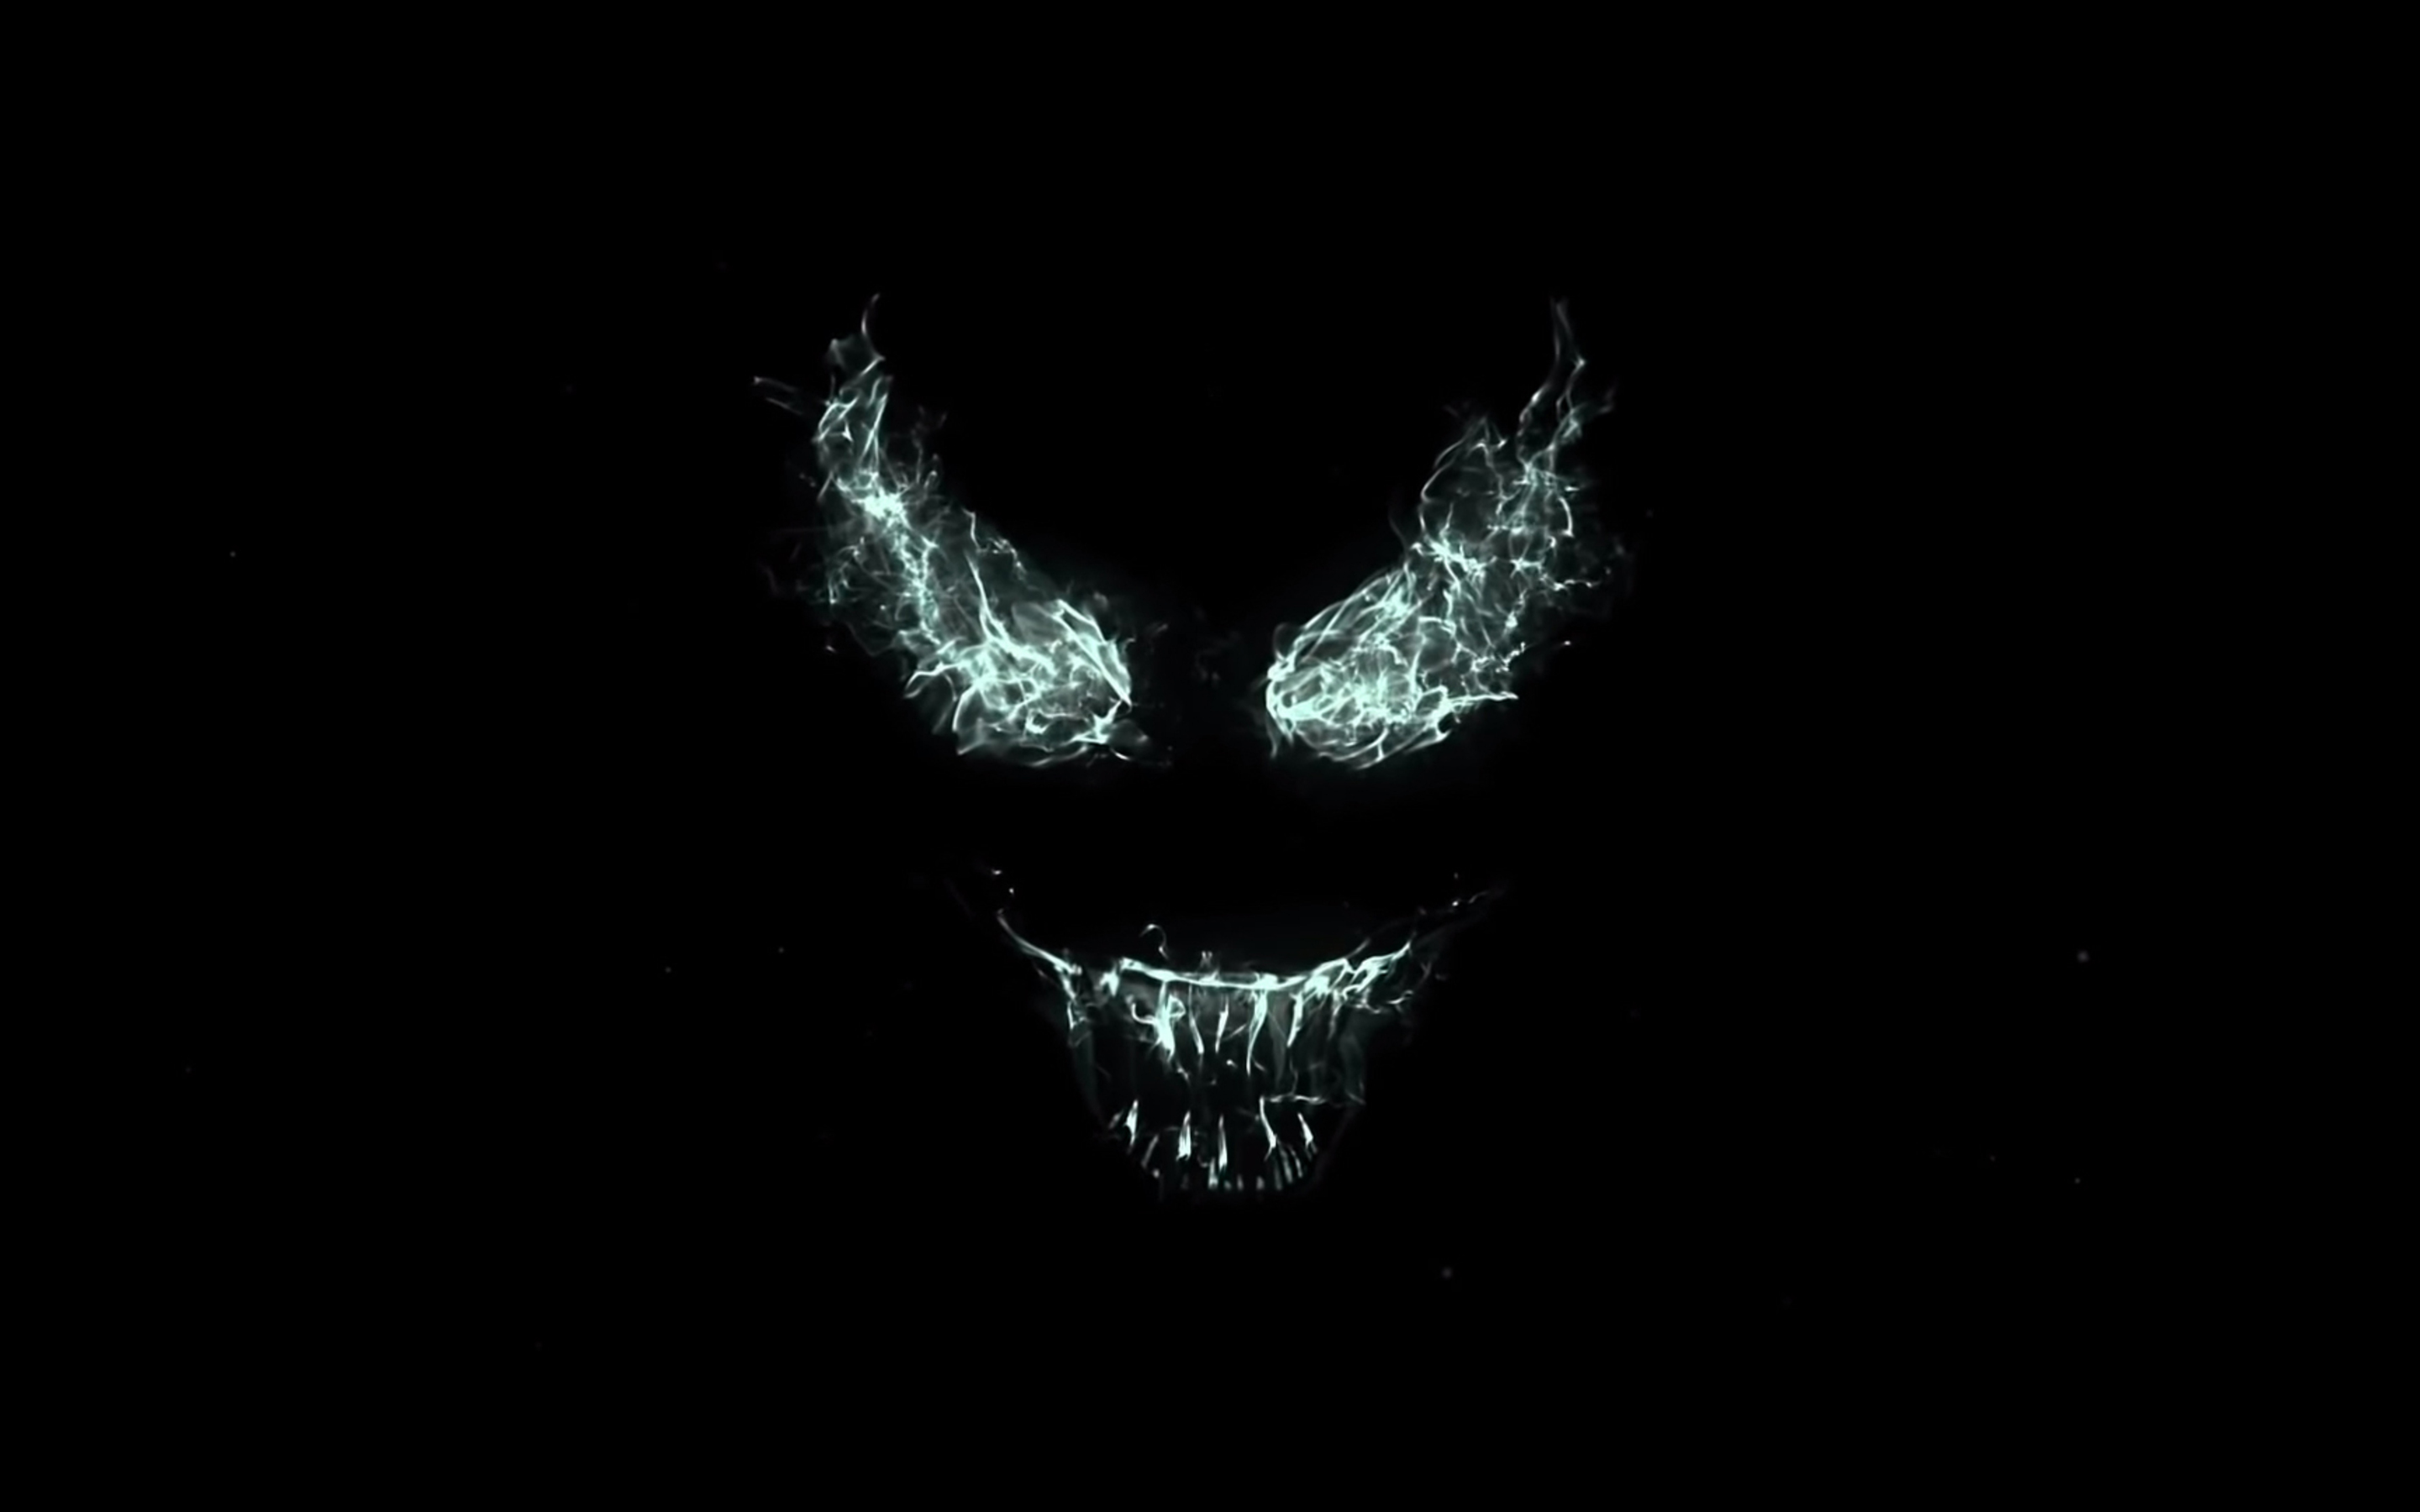 Wallpaper Venom Retina